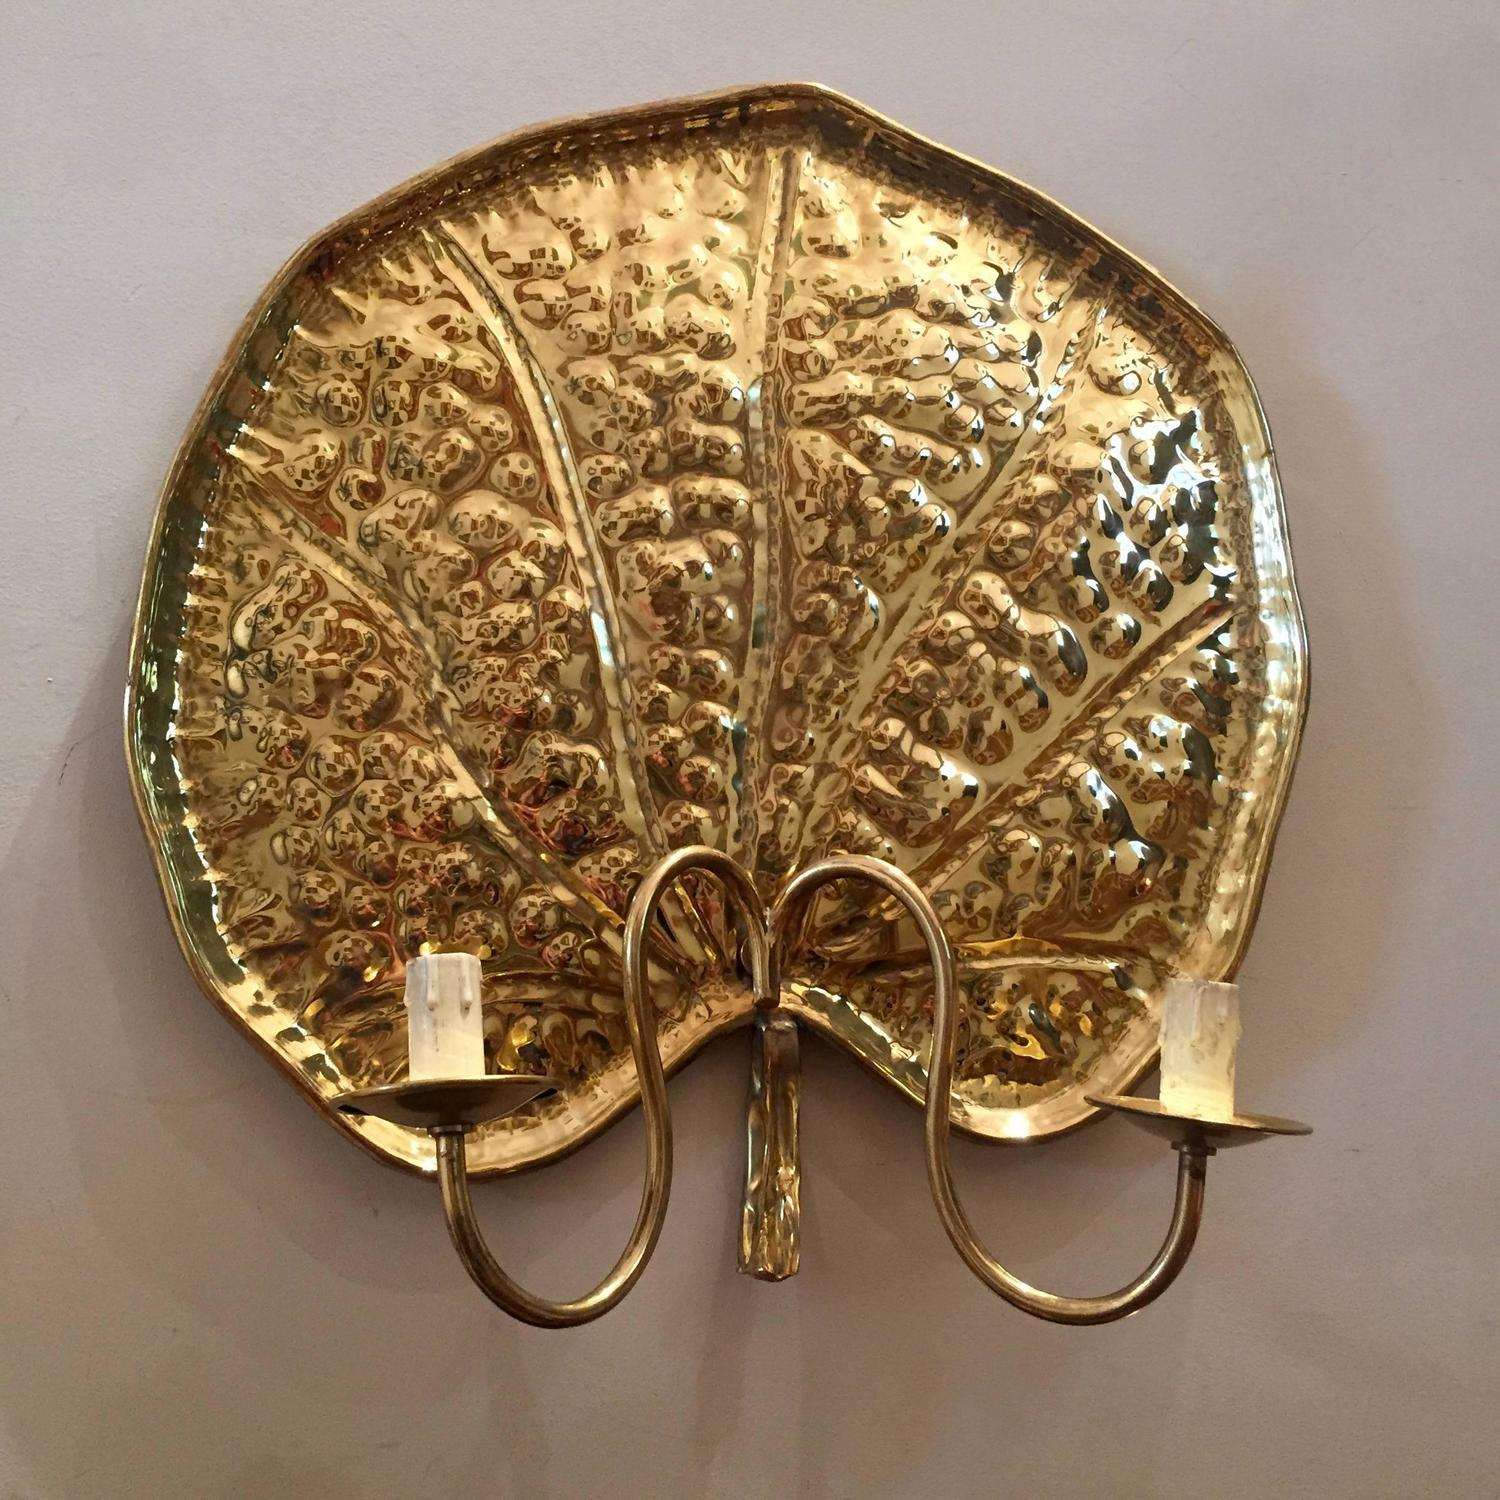 a rare set of Four Large Brass Water Lilies Sconces or Wall Lights For Sale at 1stdibs